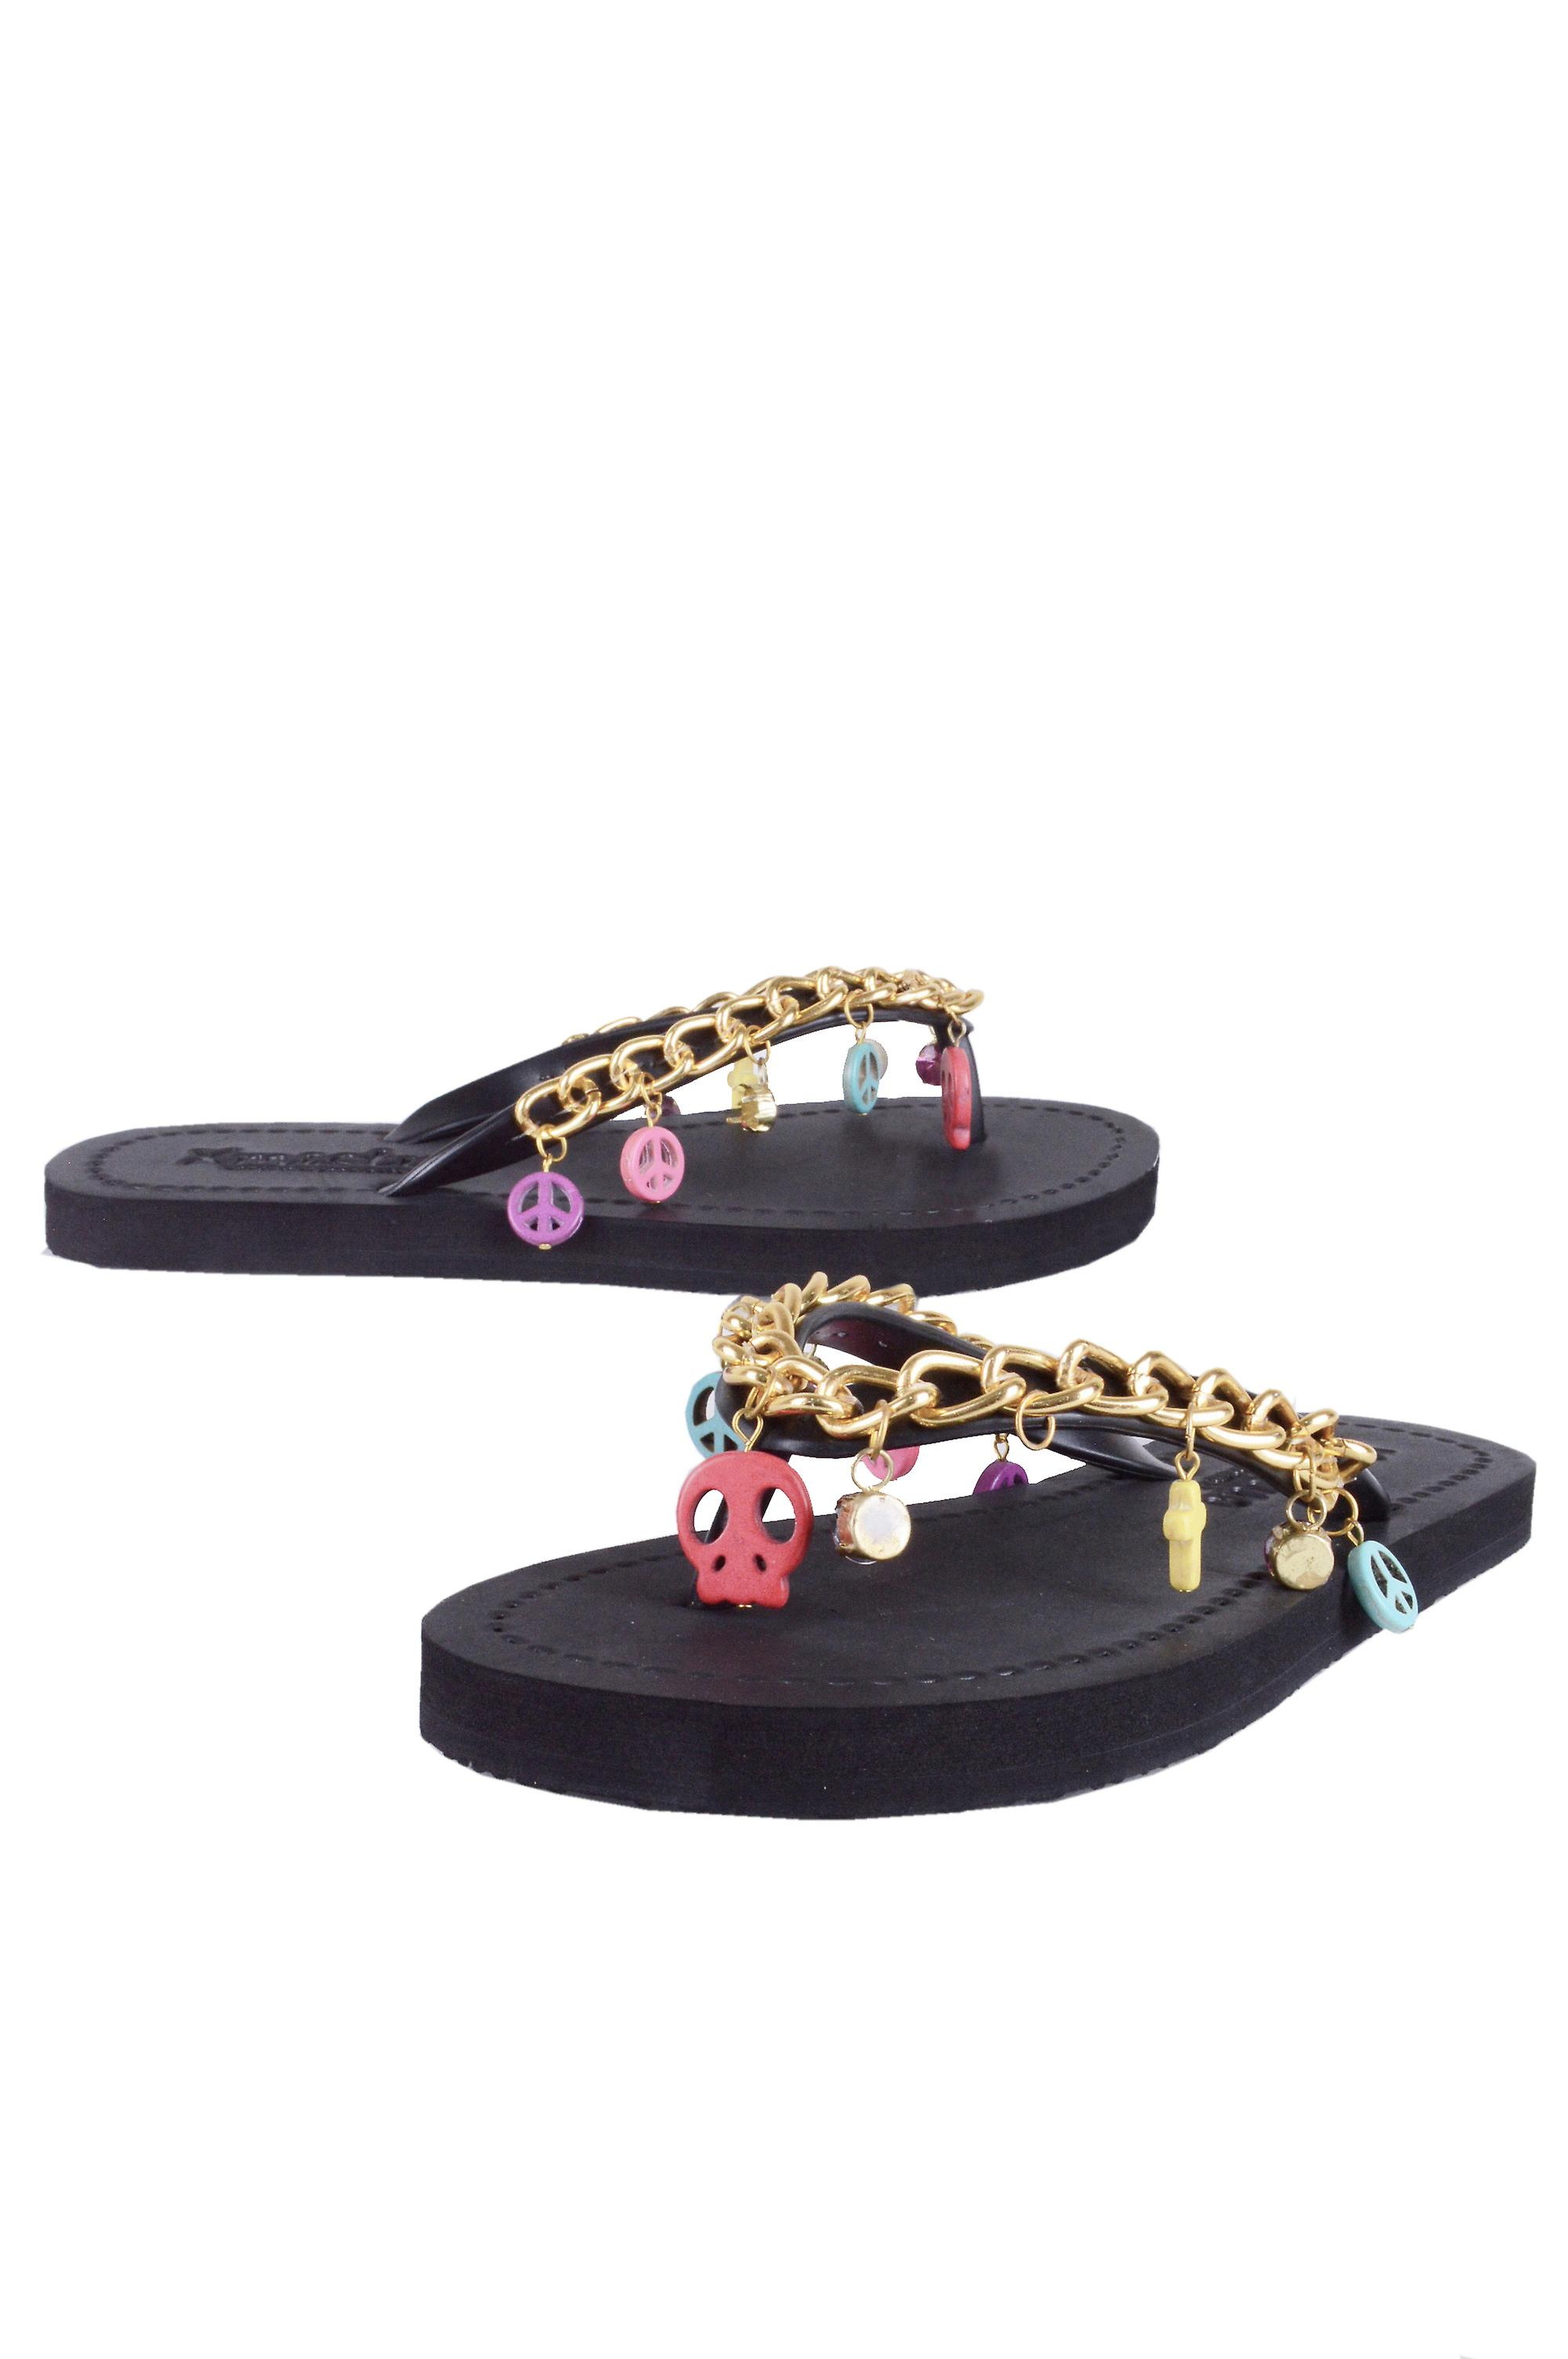 Lovemystyle Black Flip Flops With Gold Chain And Charm Strap